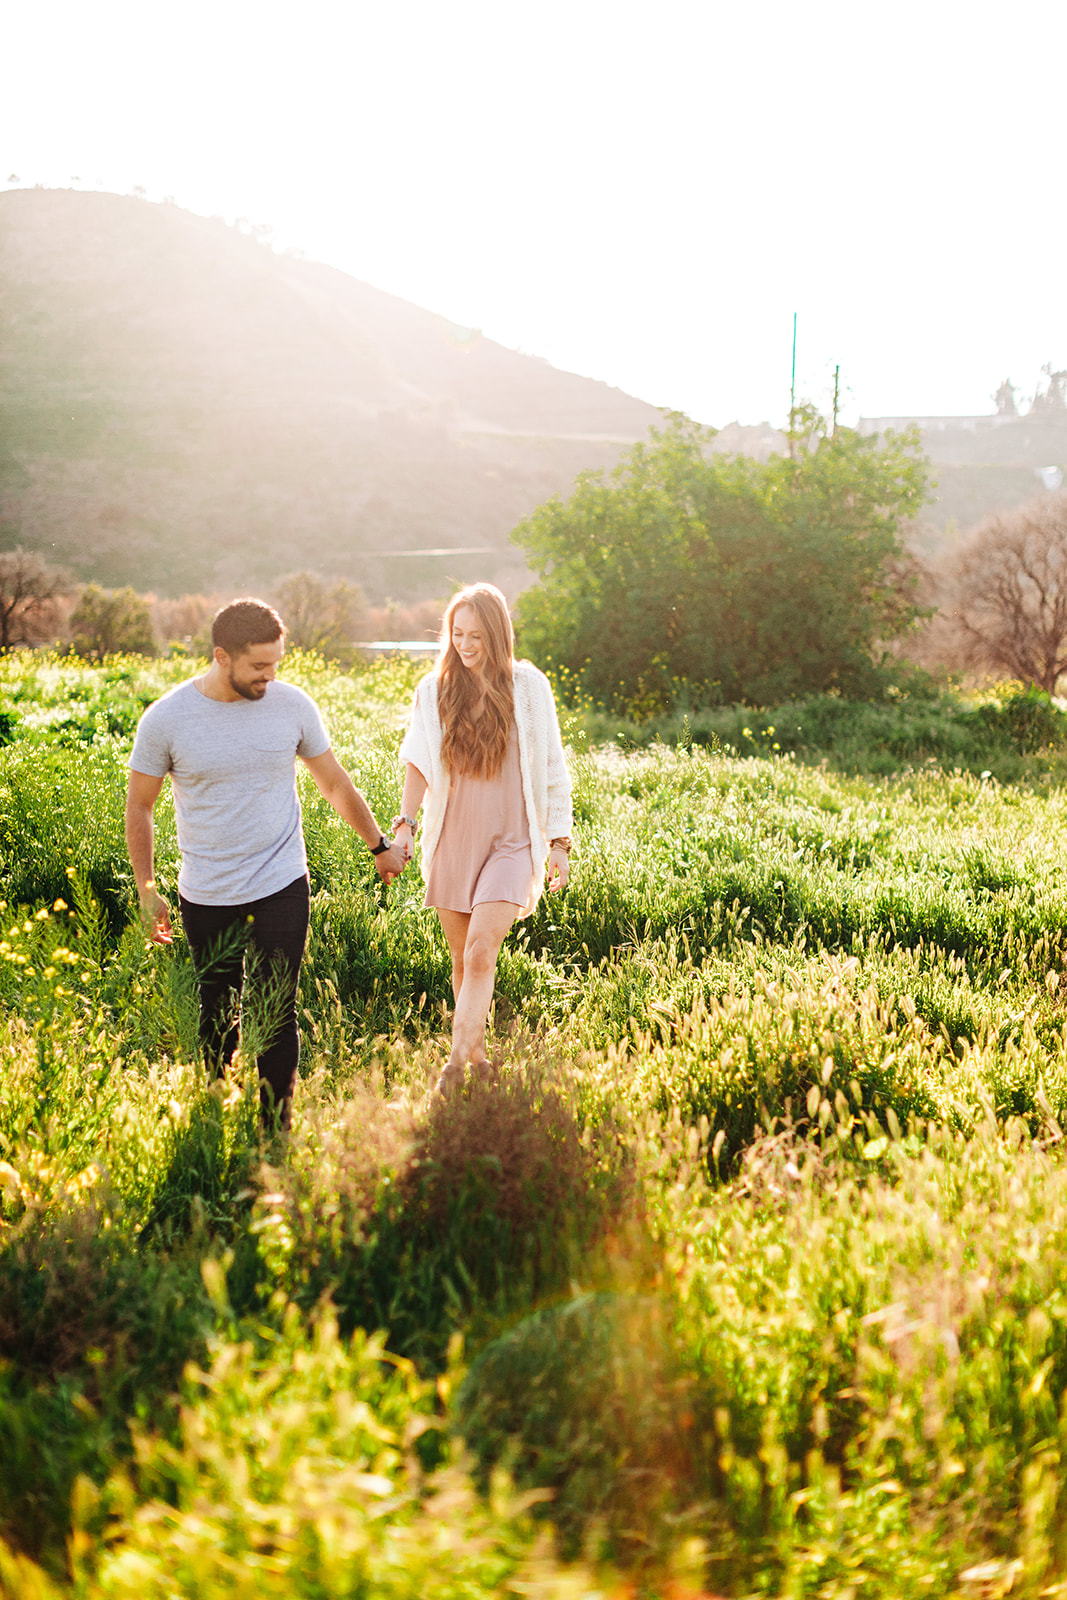 Katie-Yovin_Richard_Superbloom-Engagement-Photos_Clarisse-Rae_Southern-California-Wedding-Photographer-Orange-County-Engagement-Photos-20